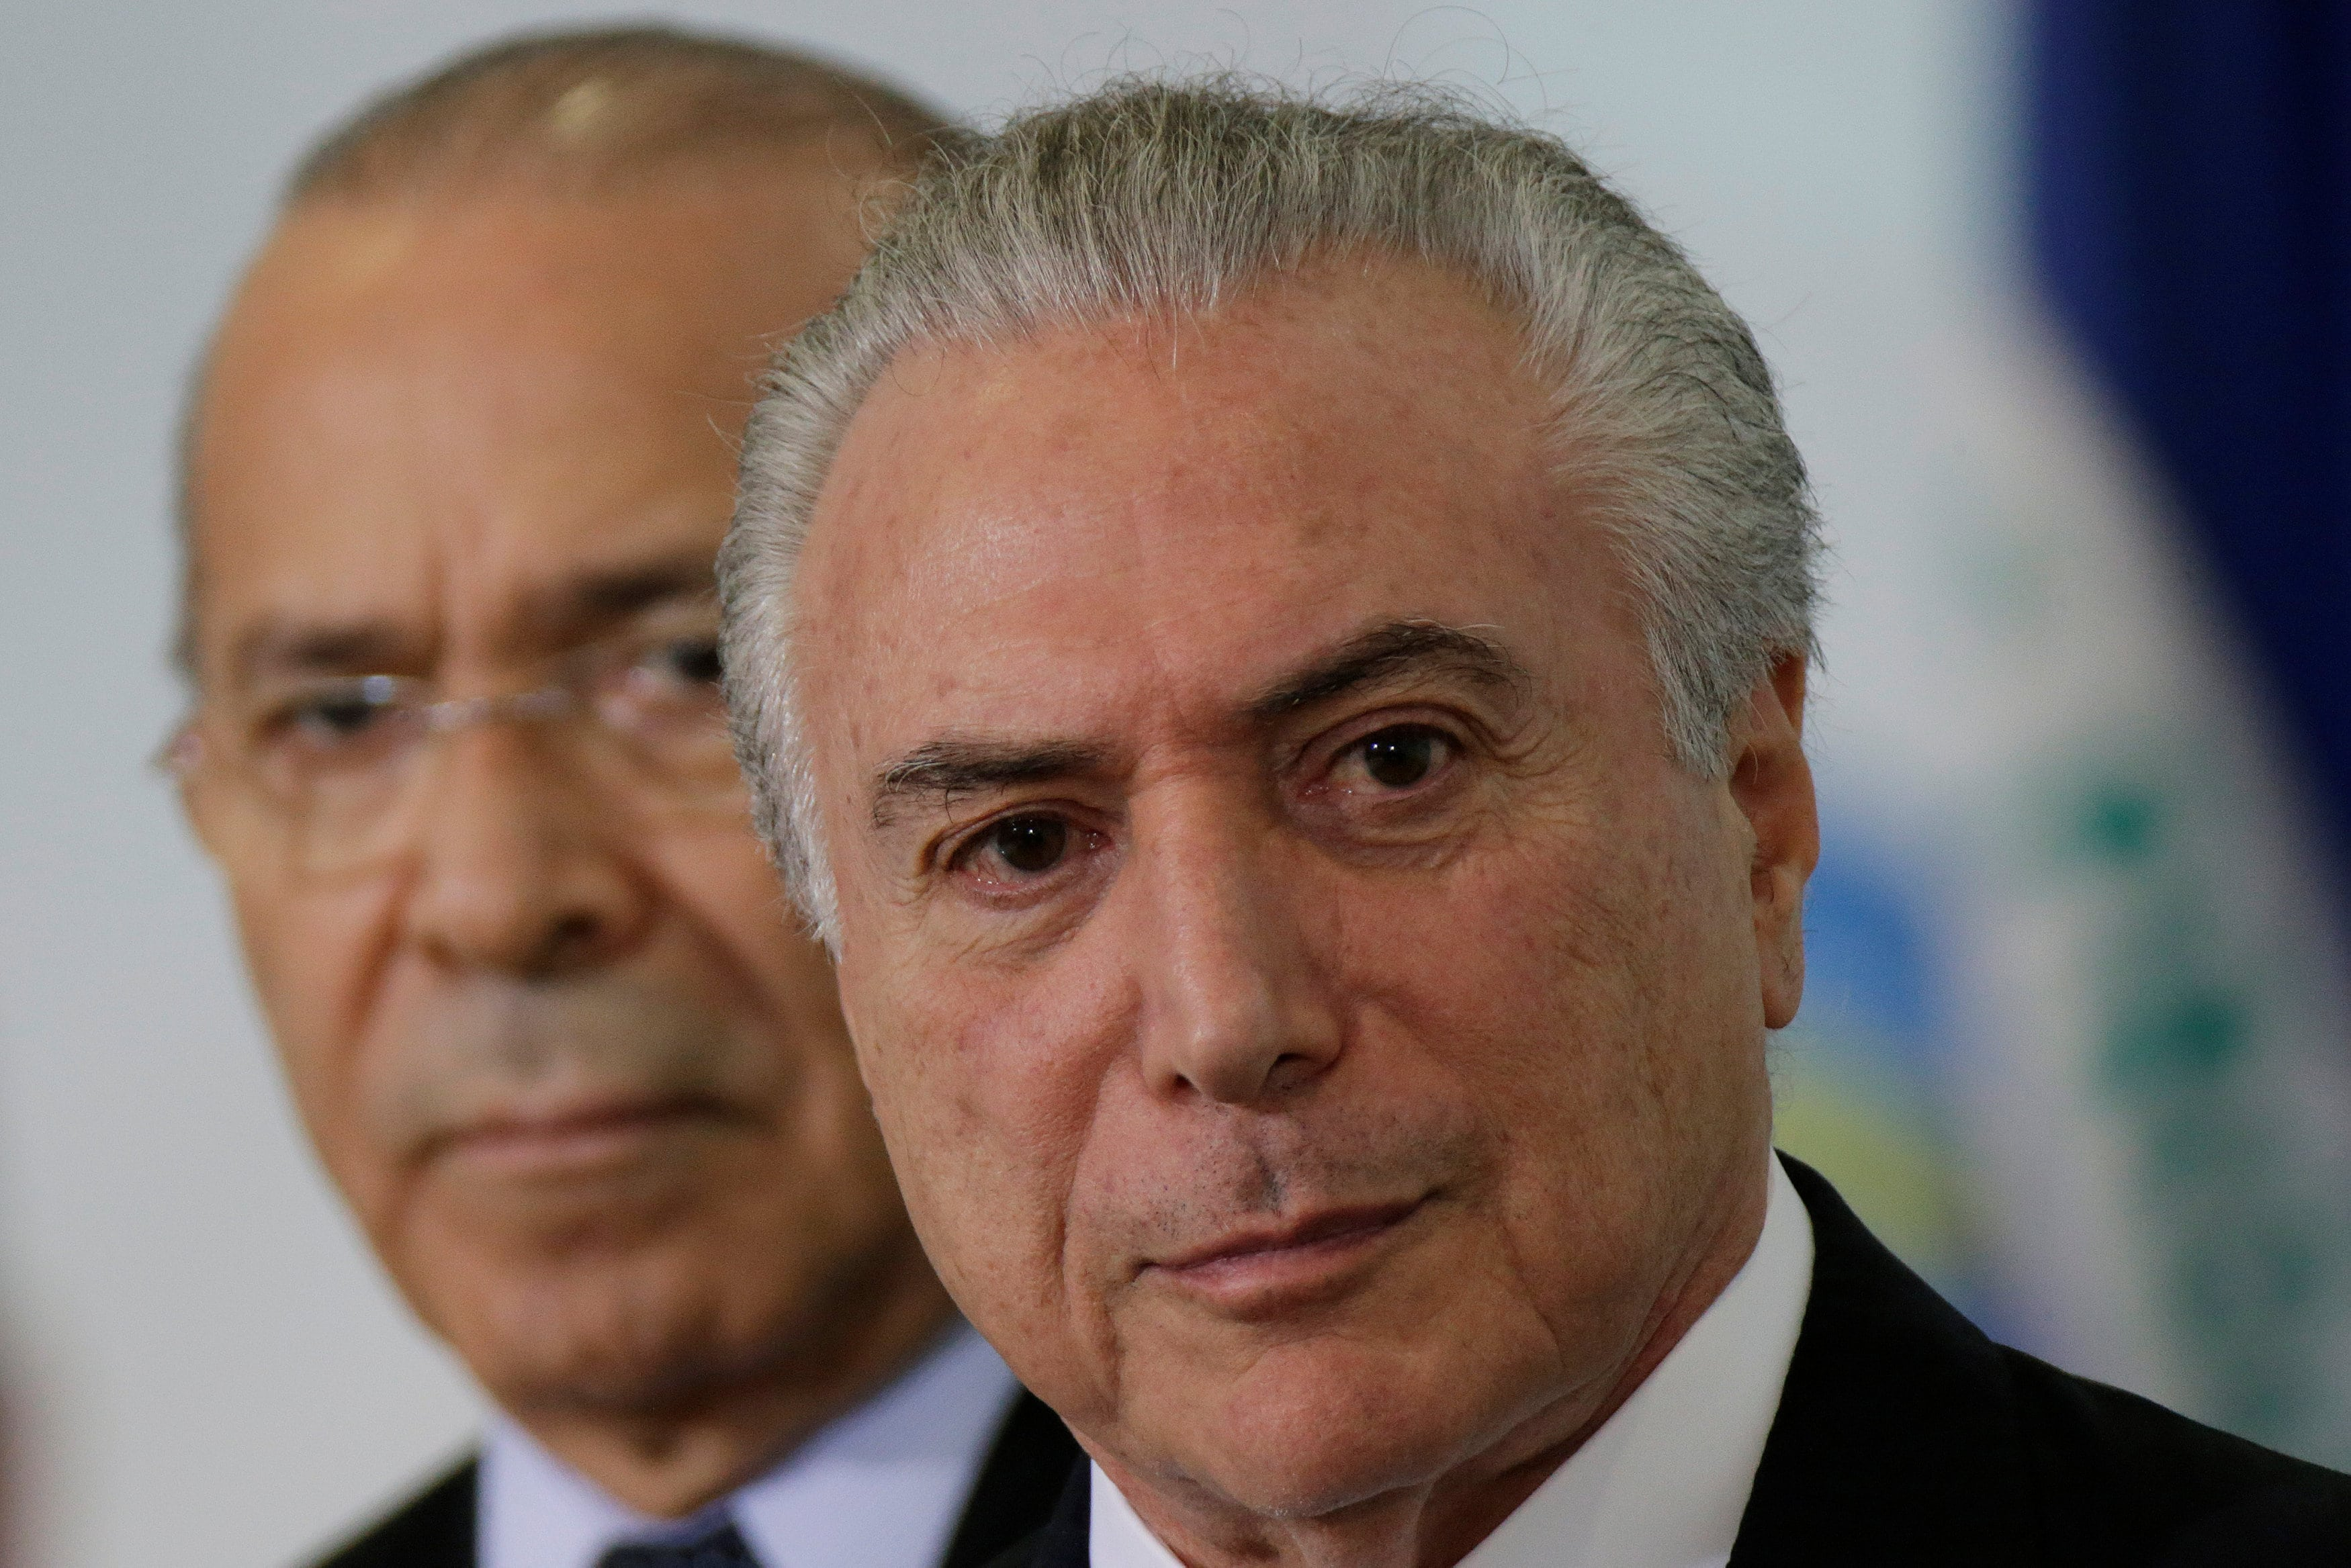 Brazil's President Temer Wins a Breather in Corruption Crisis